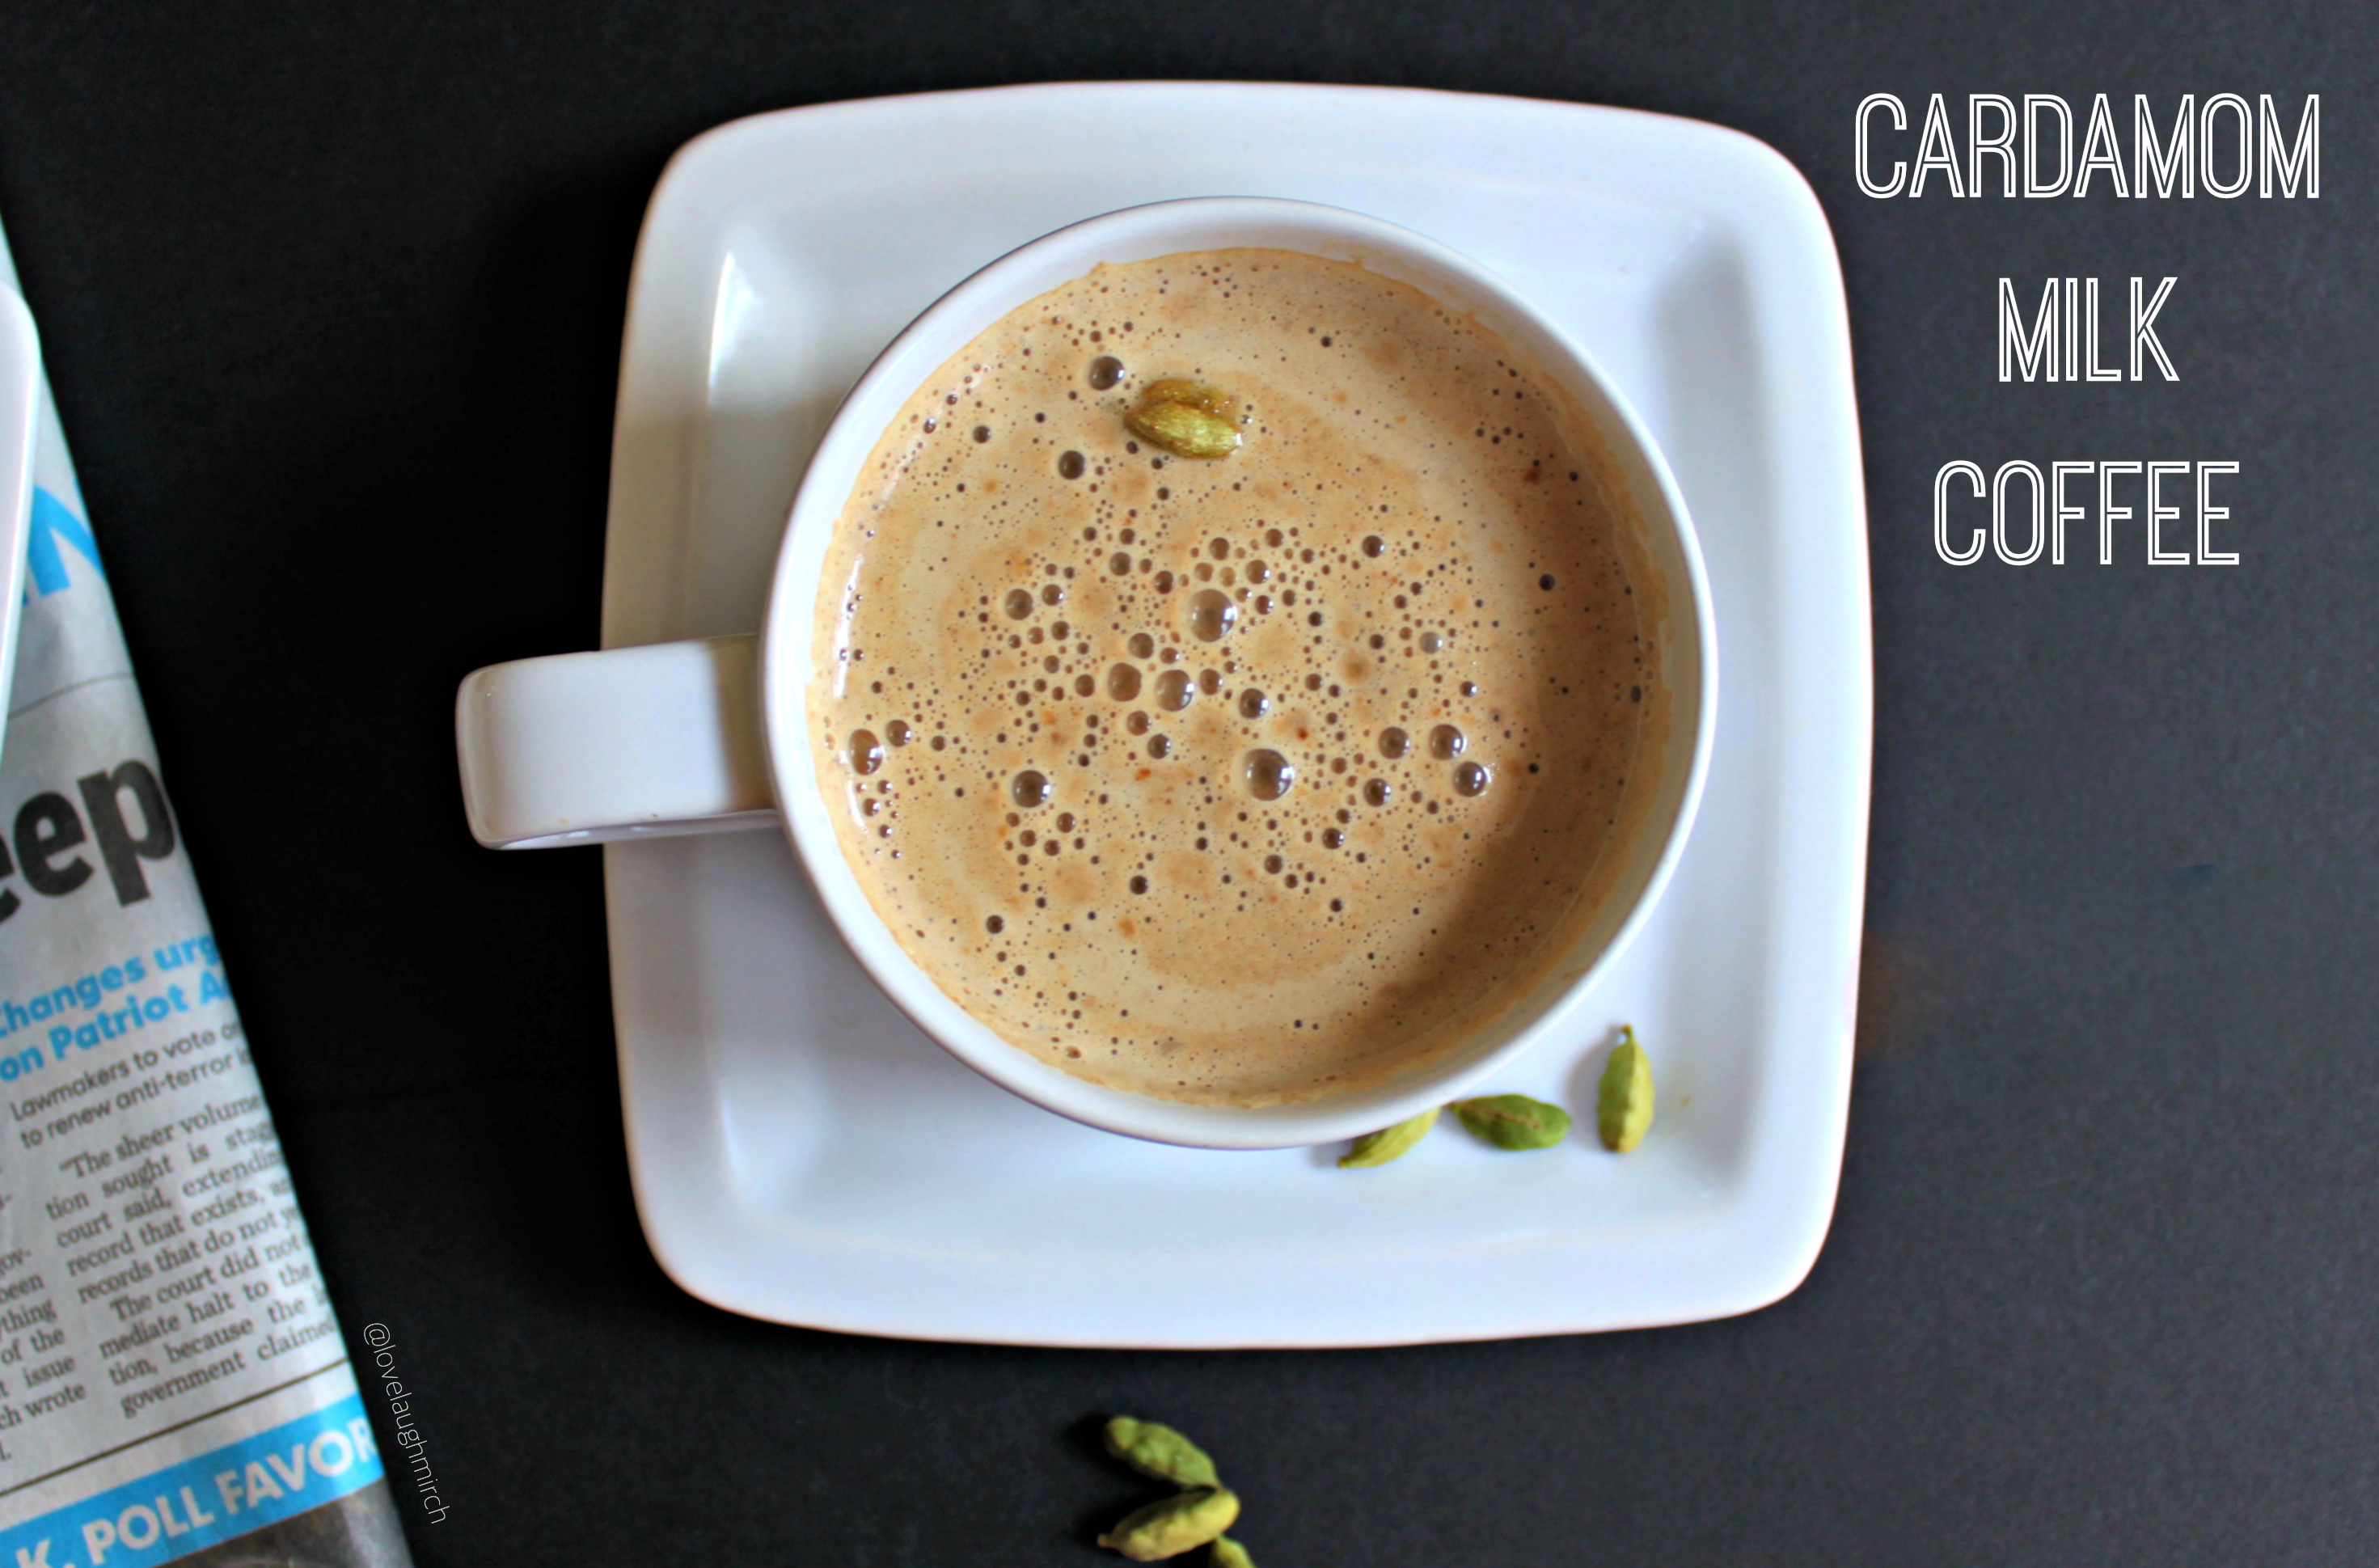 Cardamom Milk Coffee